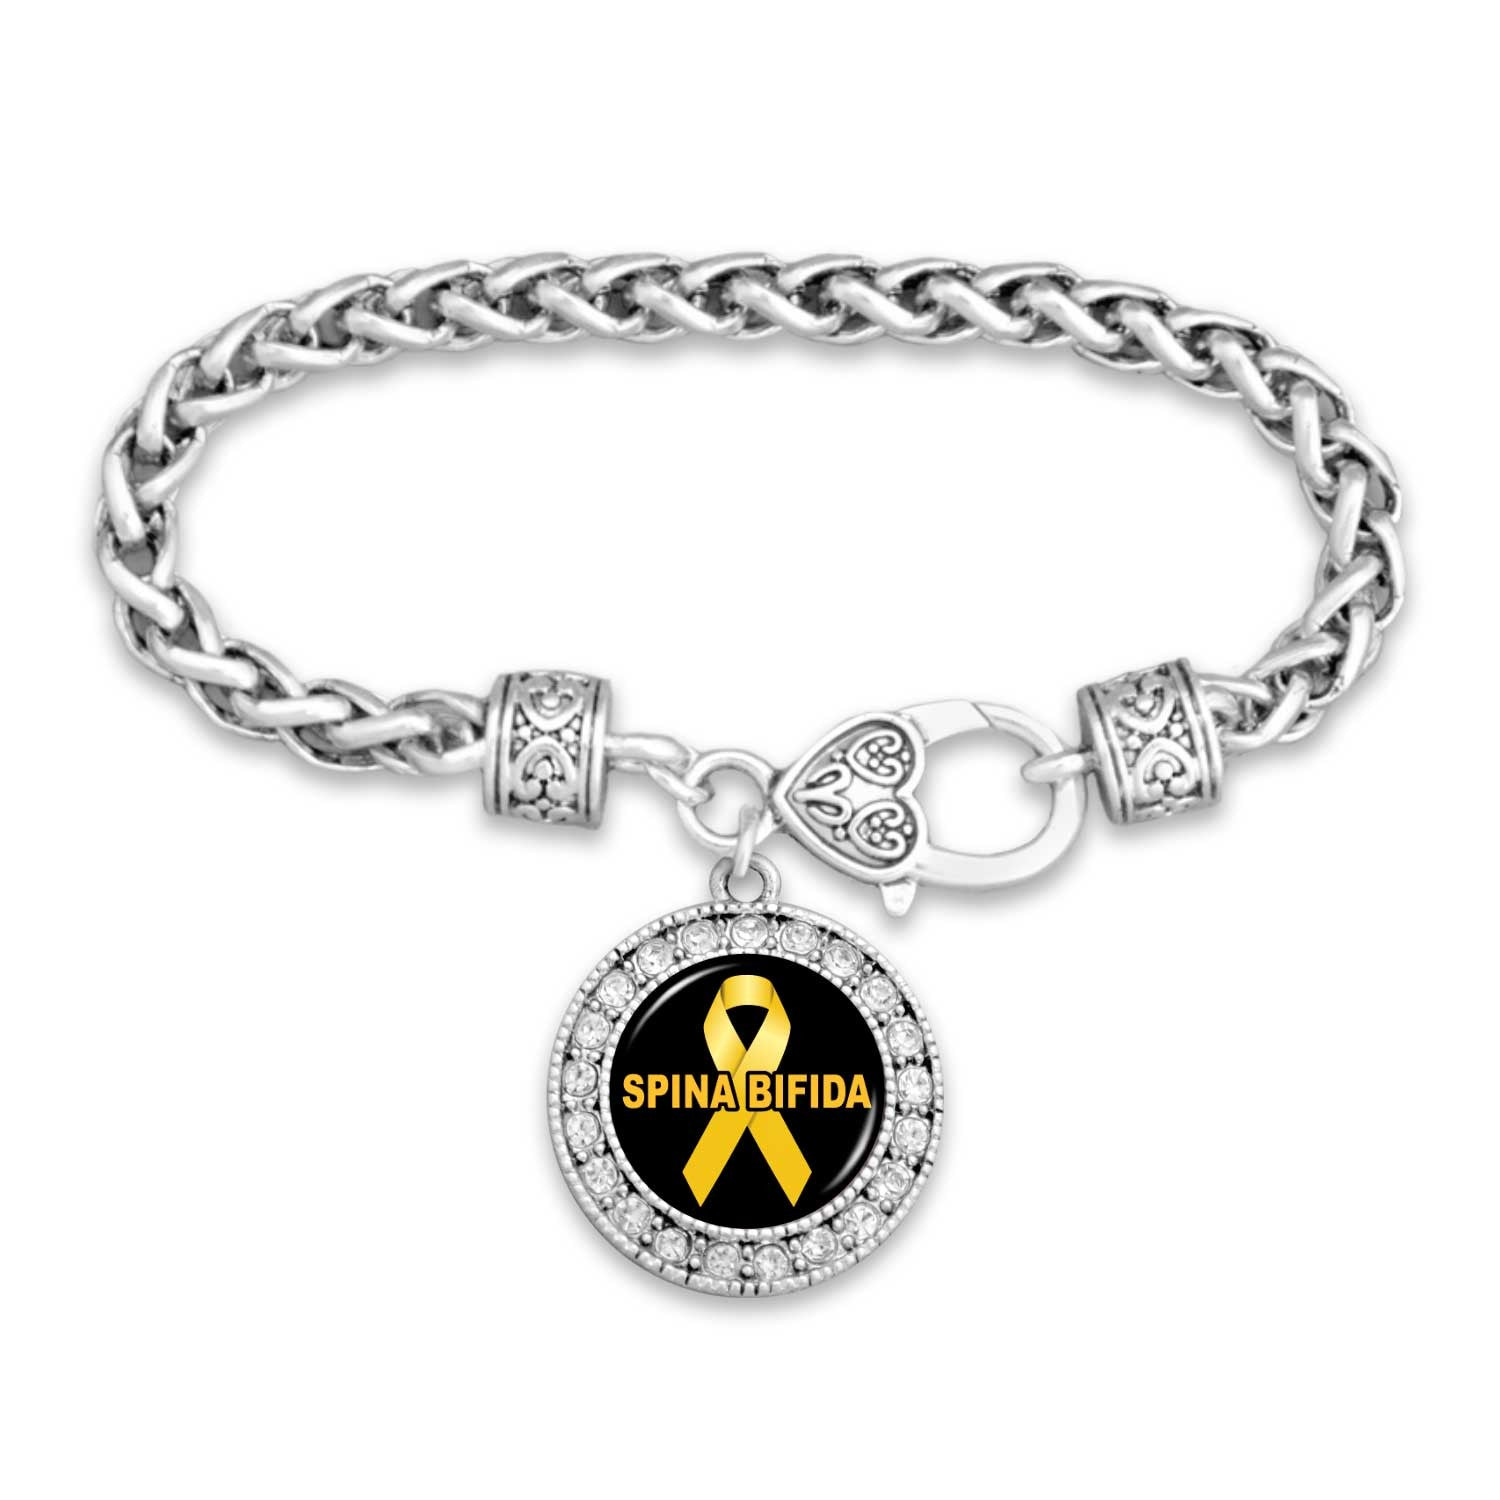 spina bone bladder storm cancer liver bracelet adenosarcoma bifida stronger charm yellow ribbon pin osteosarcoma